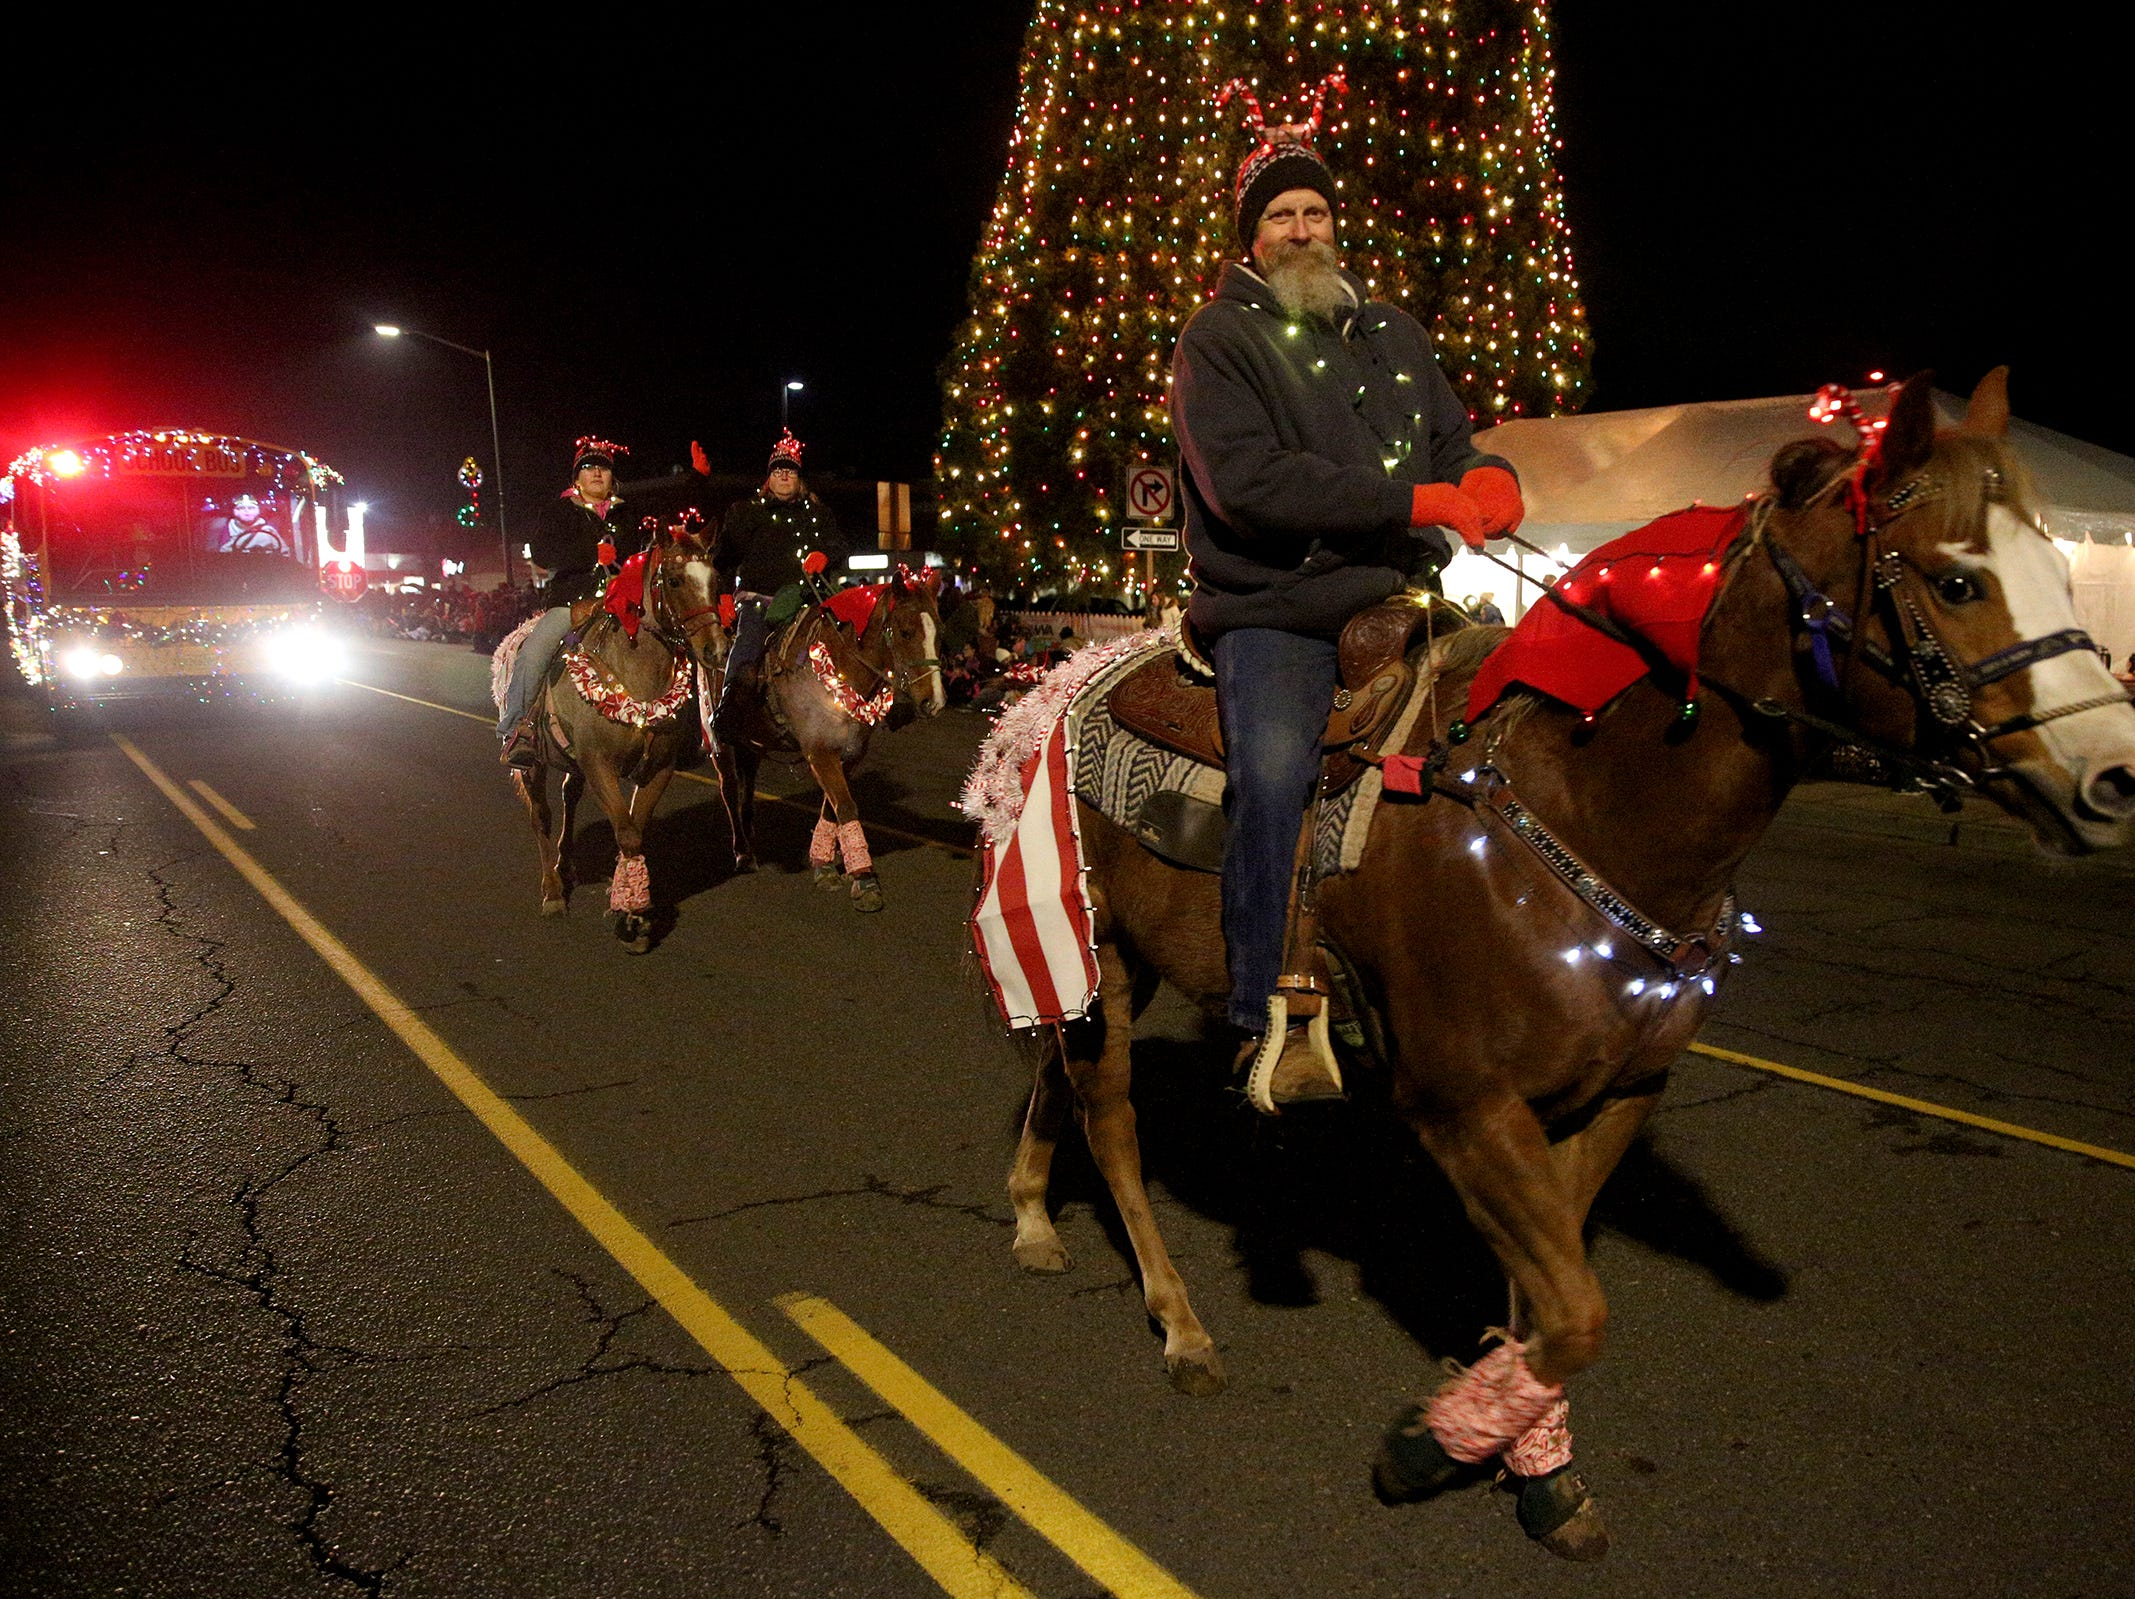 Horses make their way through the Keizer Holiday Lights Parade in Keizer on Saturday, Dec. 8, 2018.